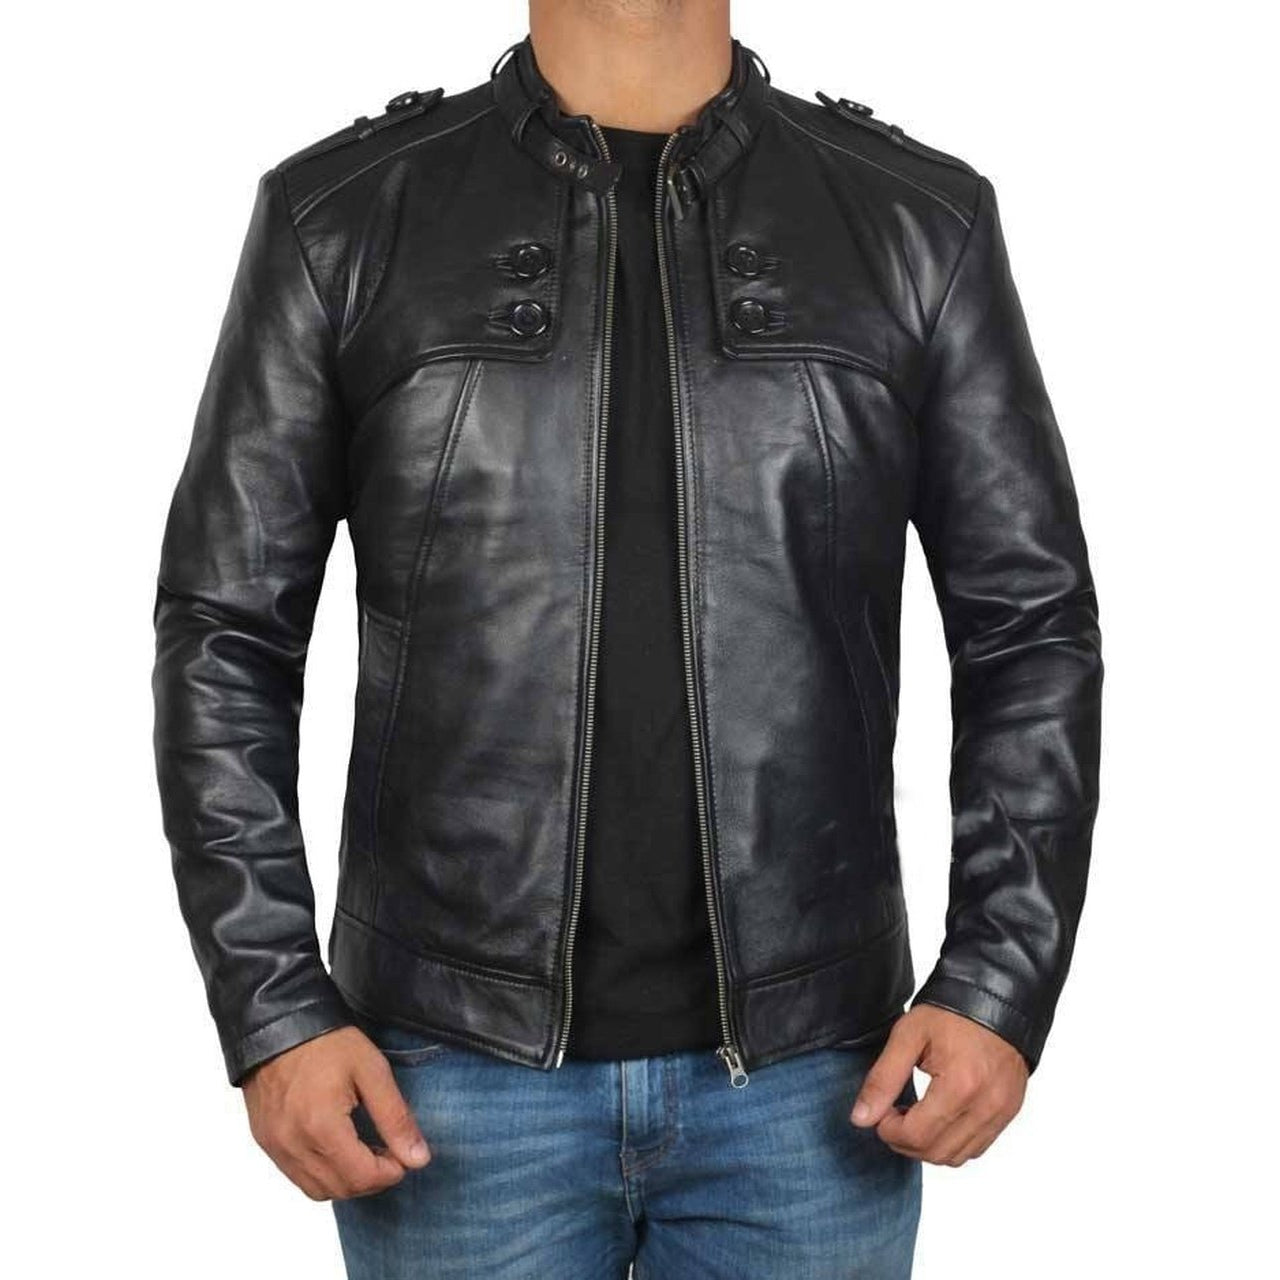 Button Pocket Black Belted Collar Leather Biker Jacket - Leather Jacket